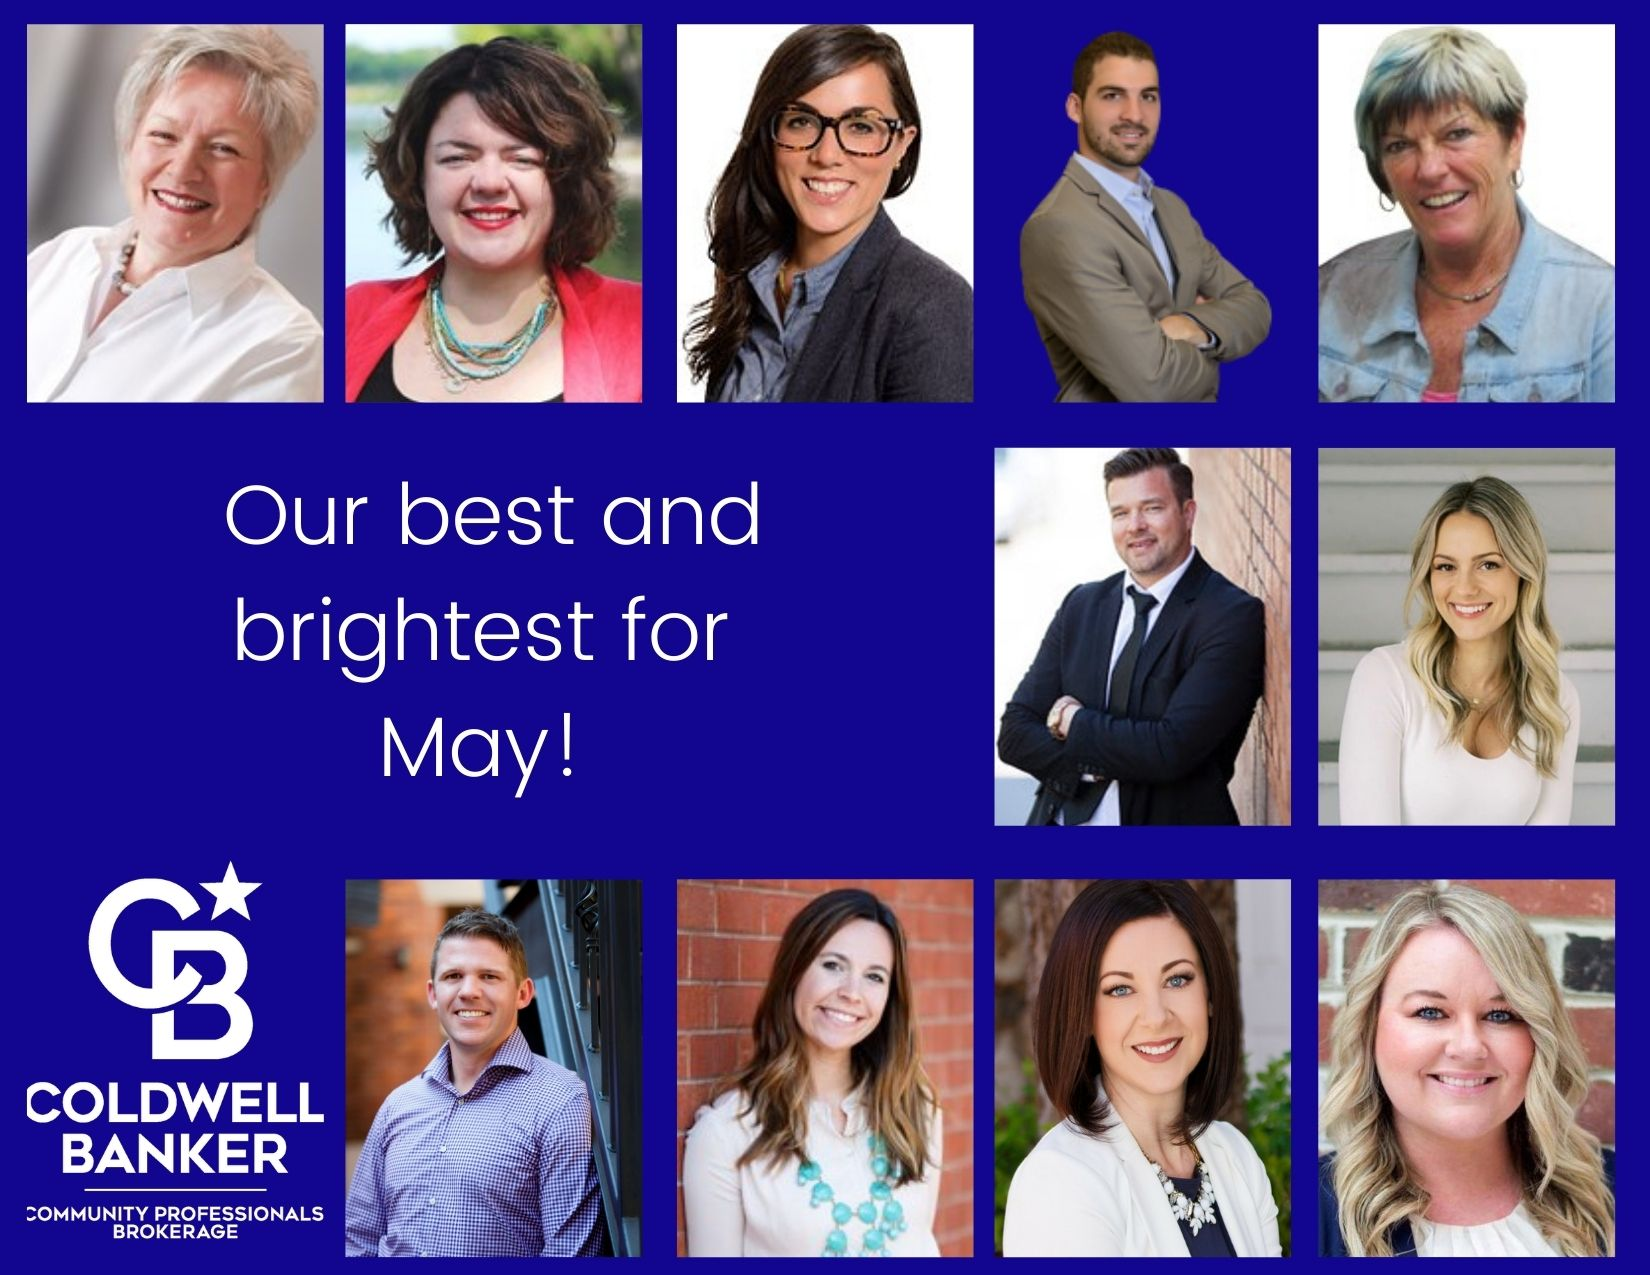 OUR BEST AND BRIGHTEST! Main Photo